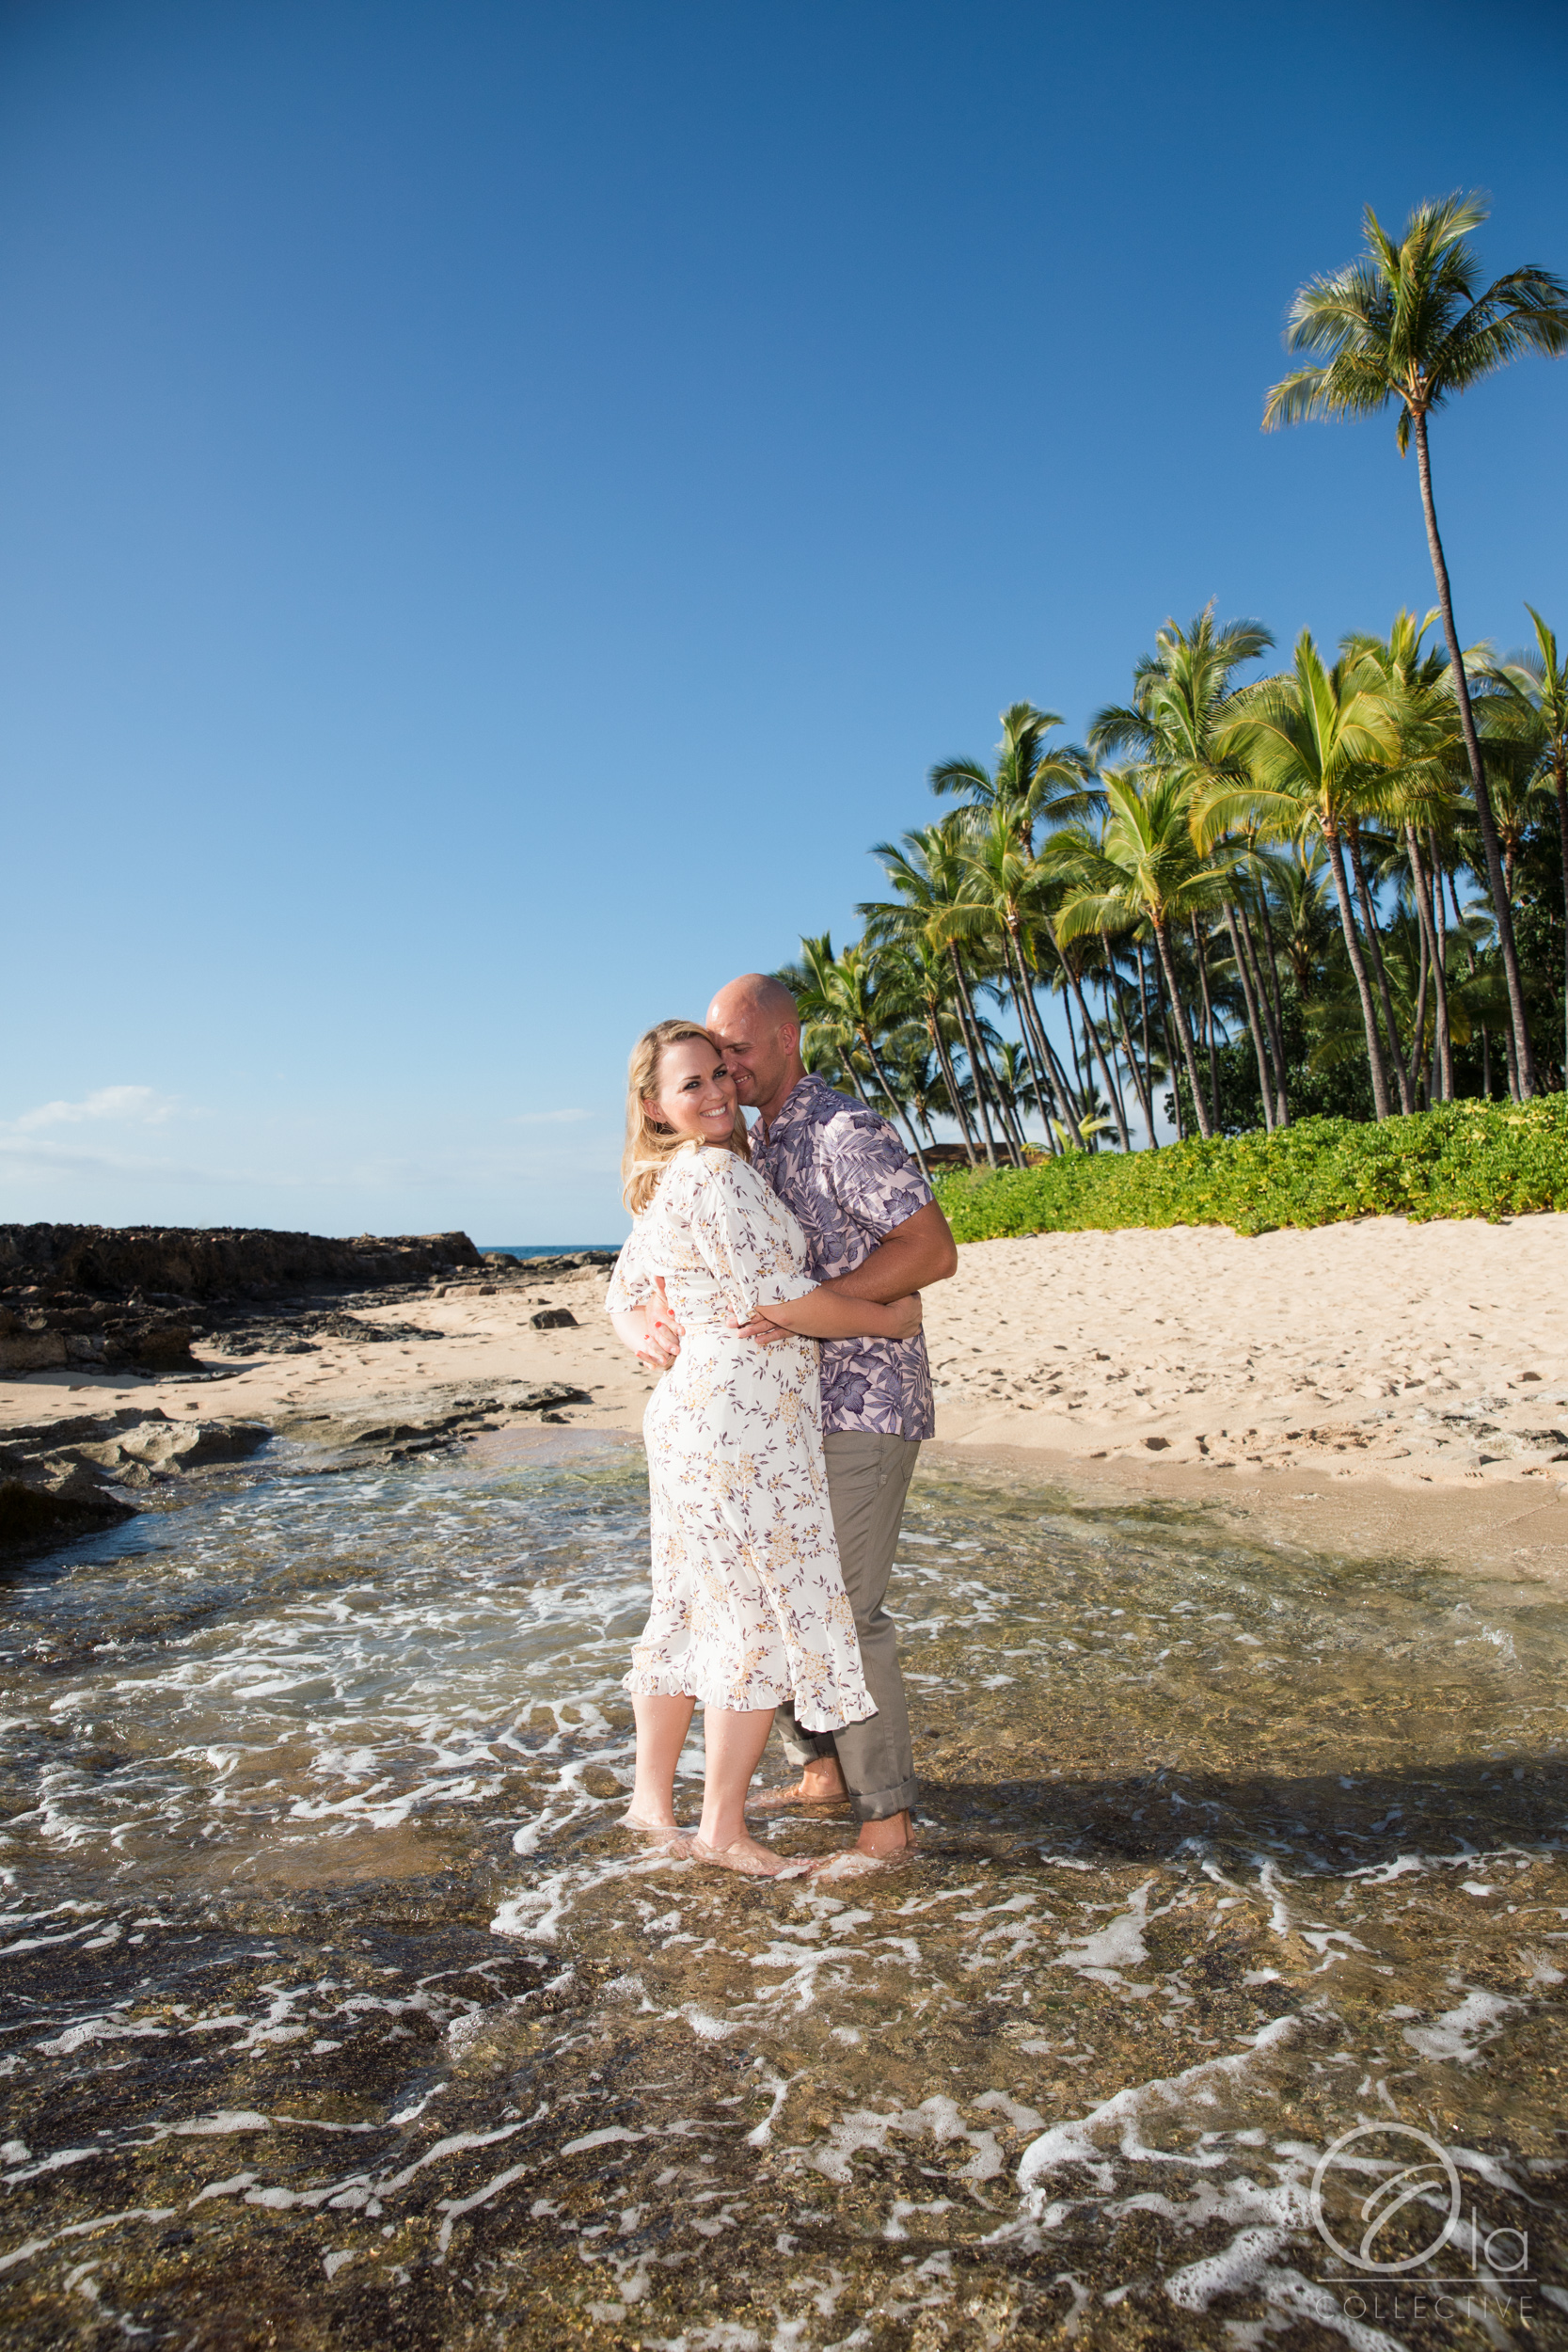 Ko-Olina-Engagement-Photographer-Ola-Collective-21.jpg